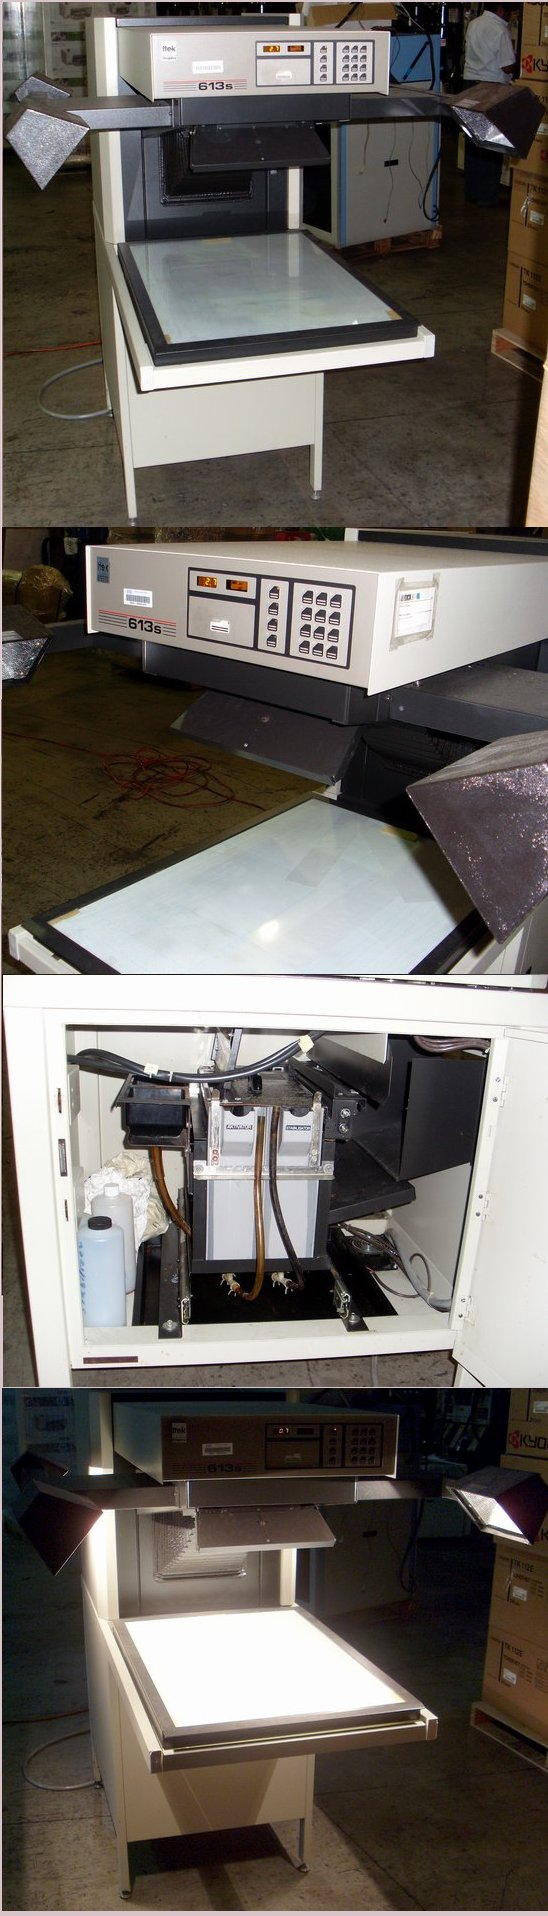 Picture of: itek graphix 613s platemaker photo plate processor 613 s and tech talk, comments, help & reviews.